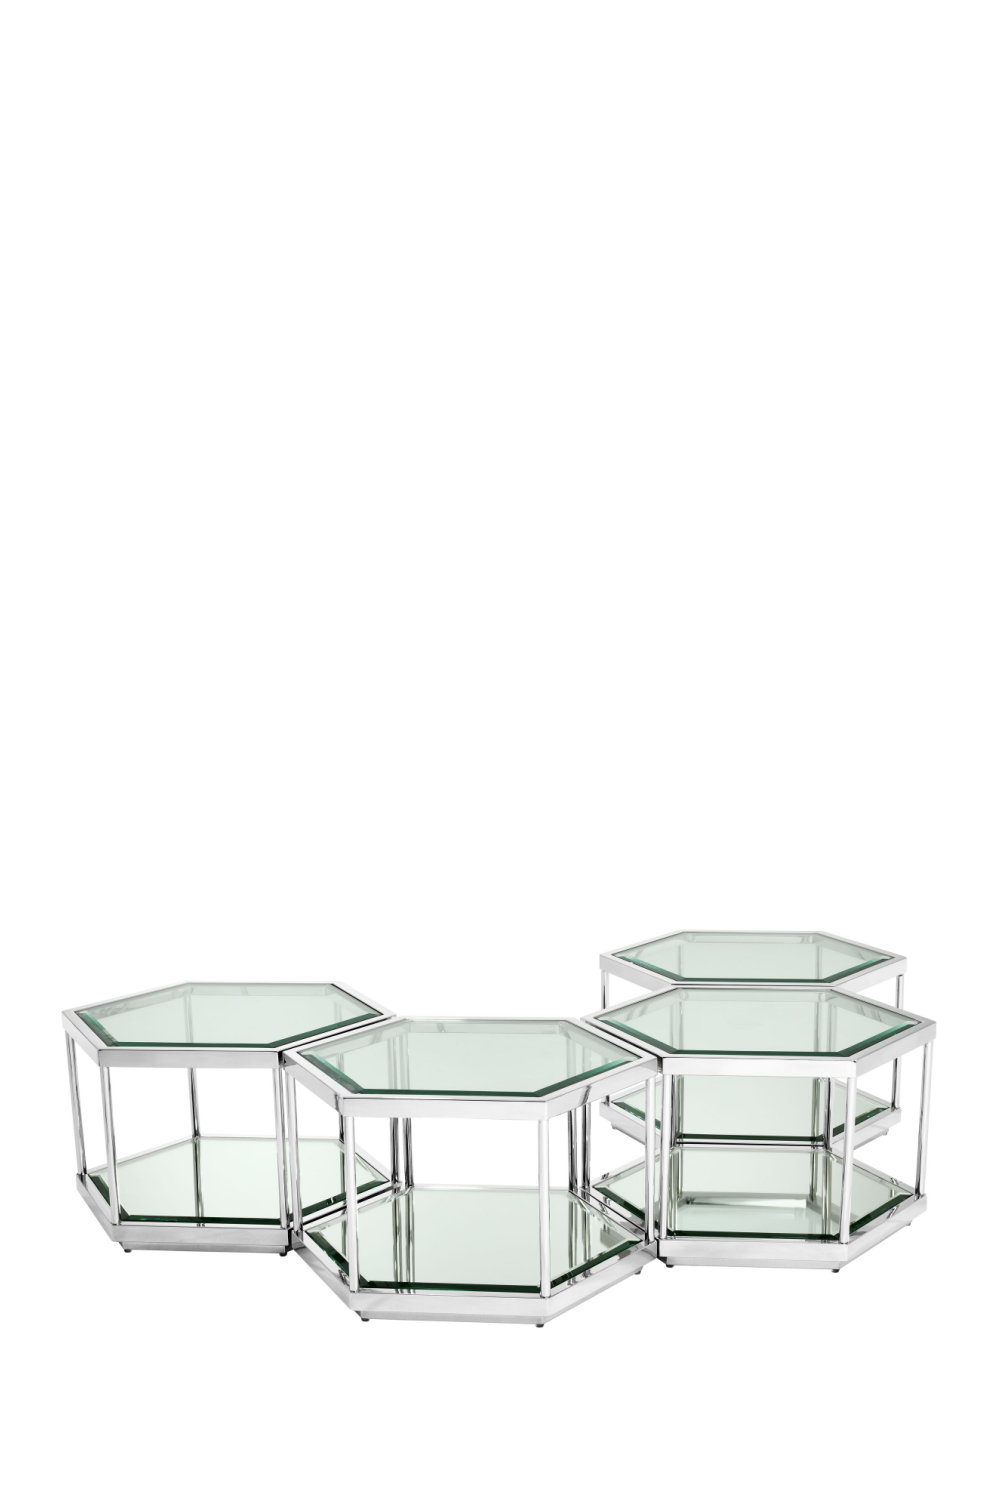 Hexagonal Coffee Table Set | Eichholtz Sax | 1# Eichholtz Retailer